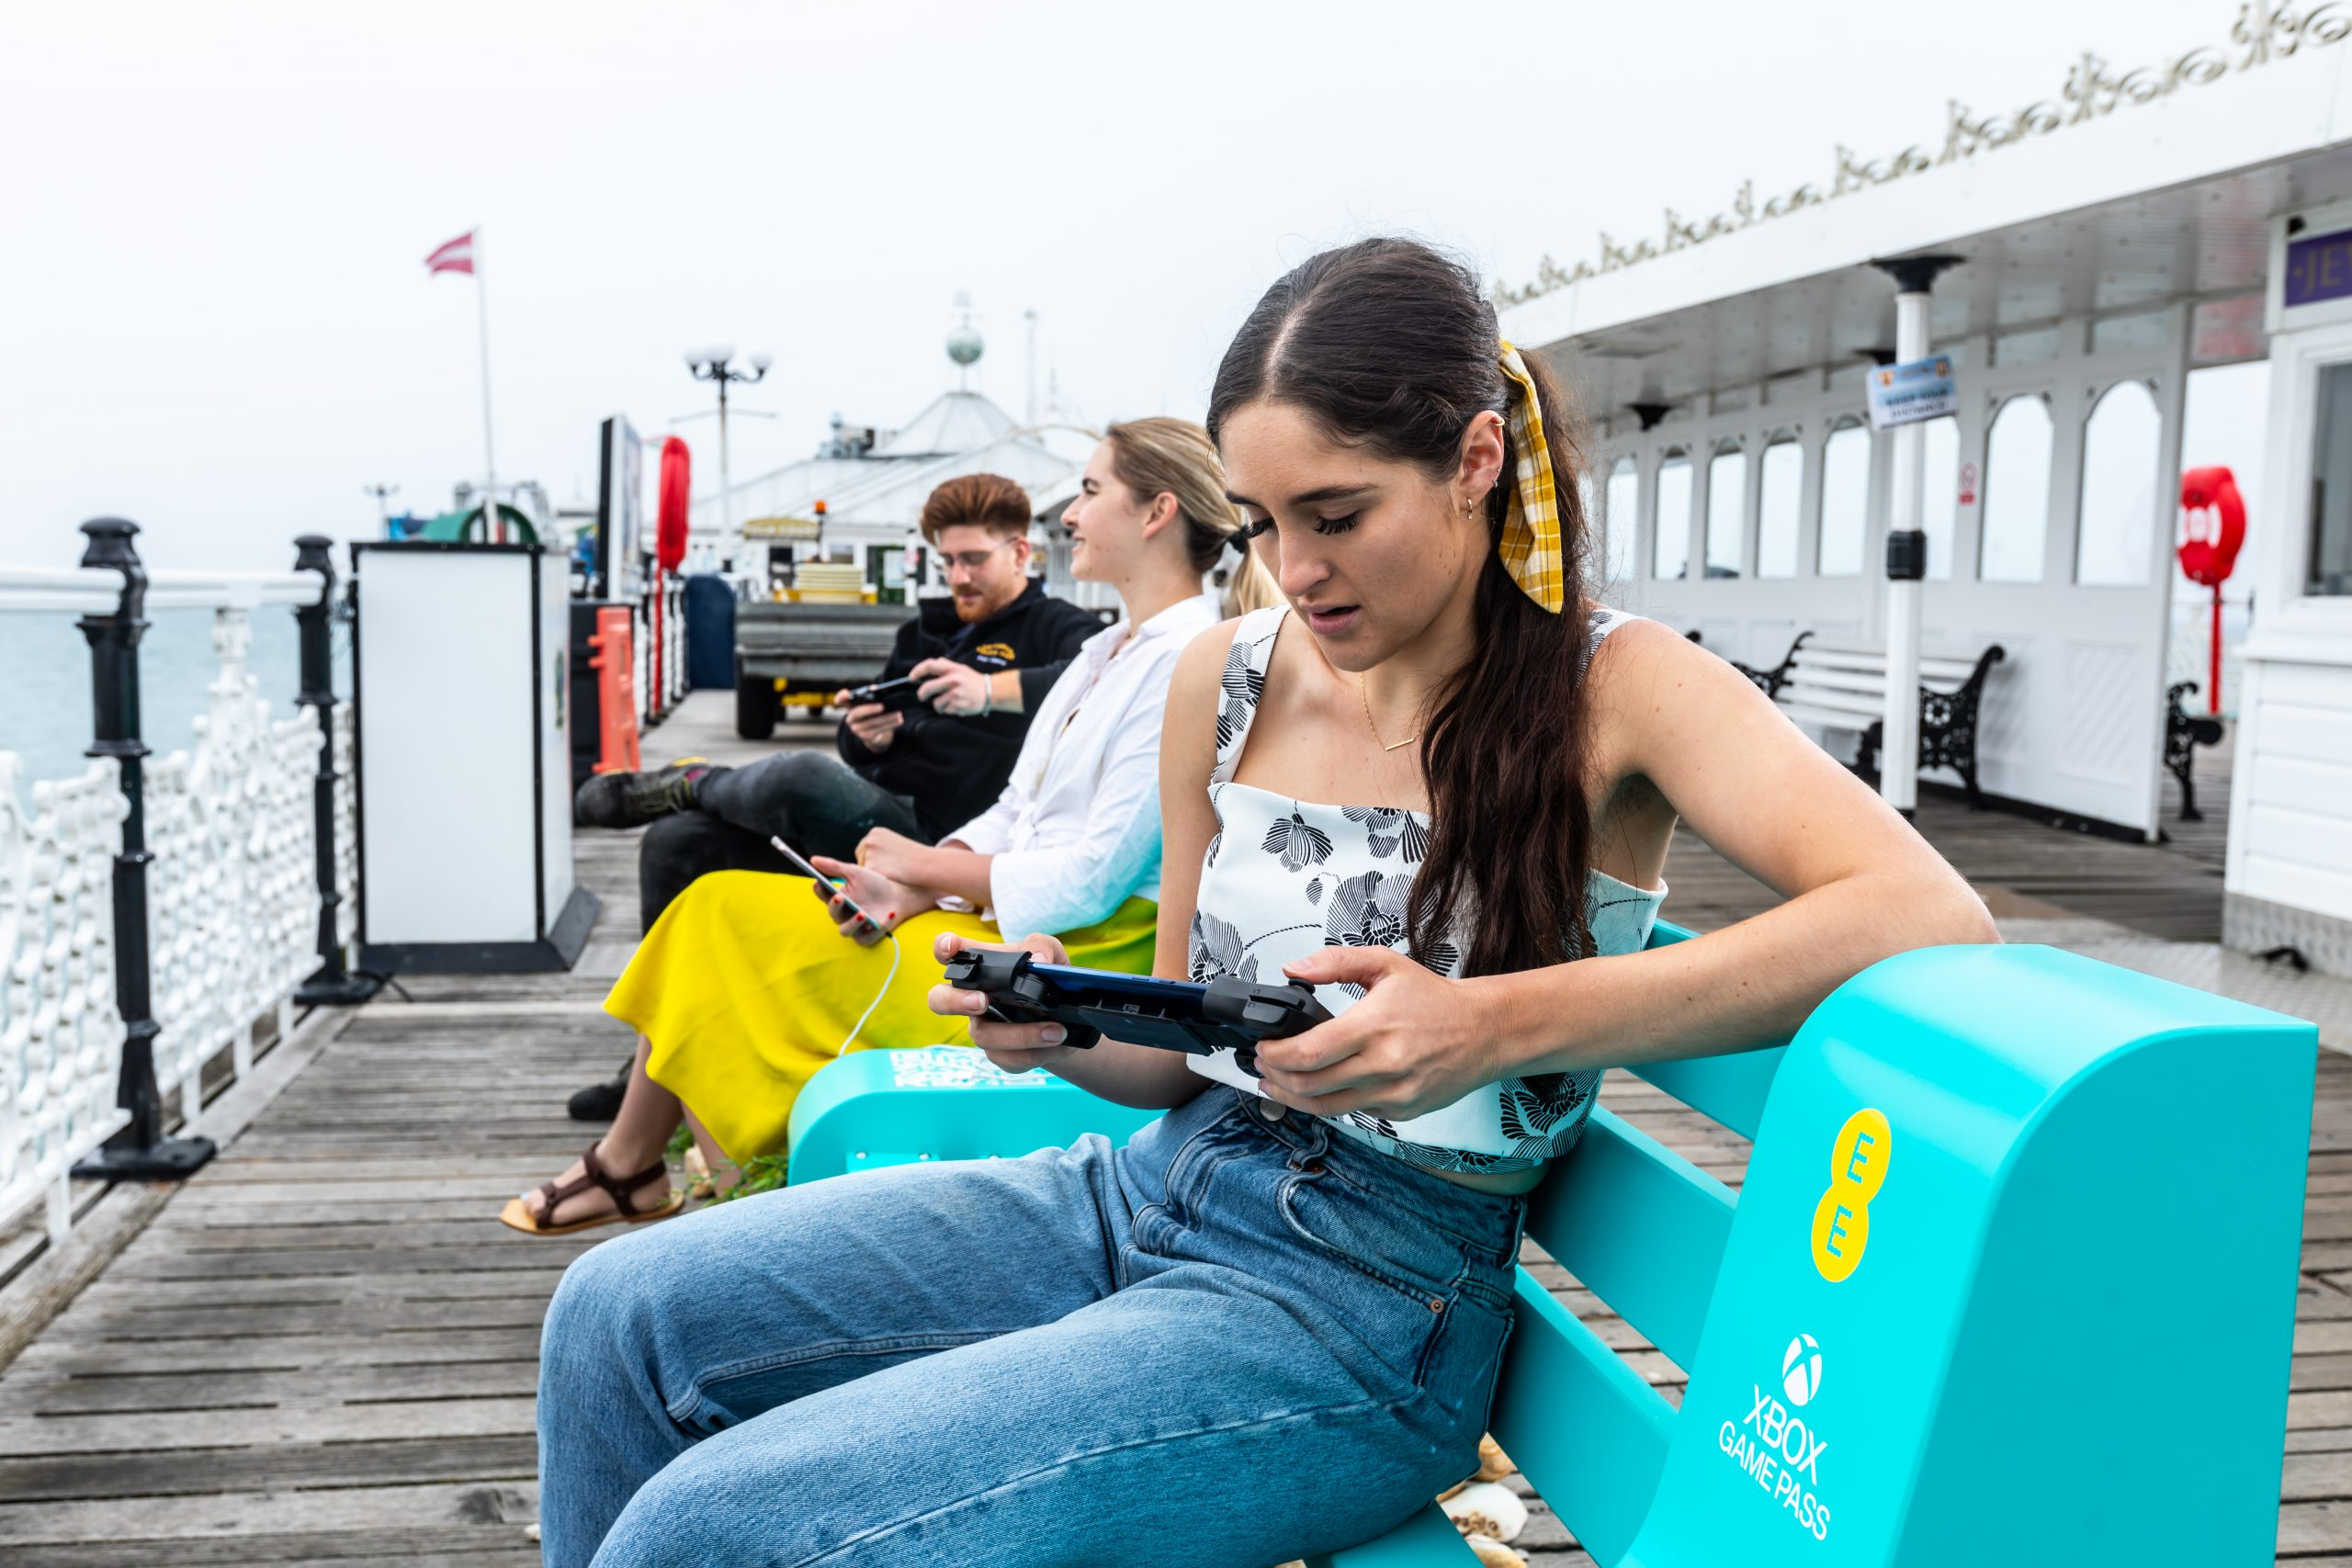 EE creates 5G 'Pit Stops' to show off cloud gaming